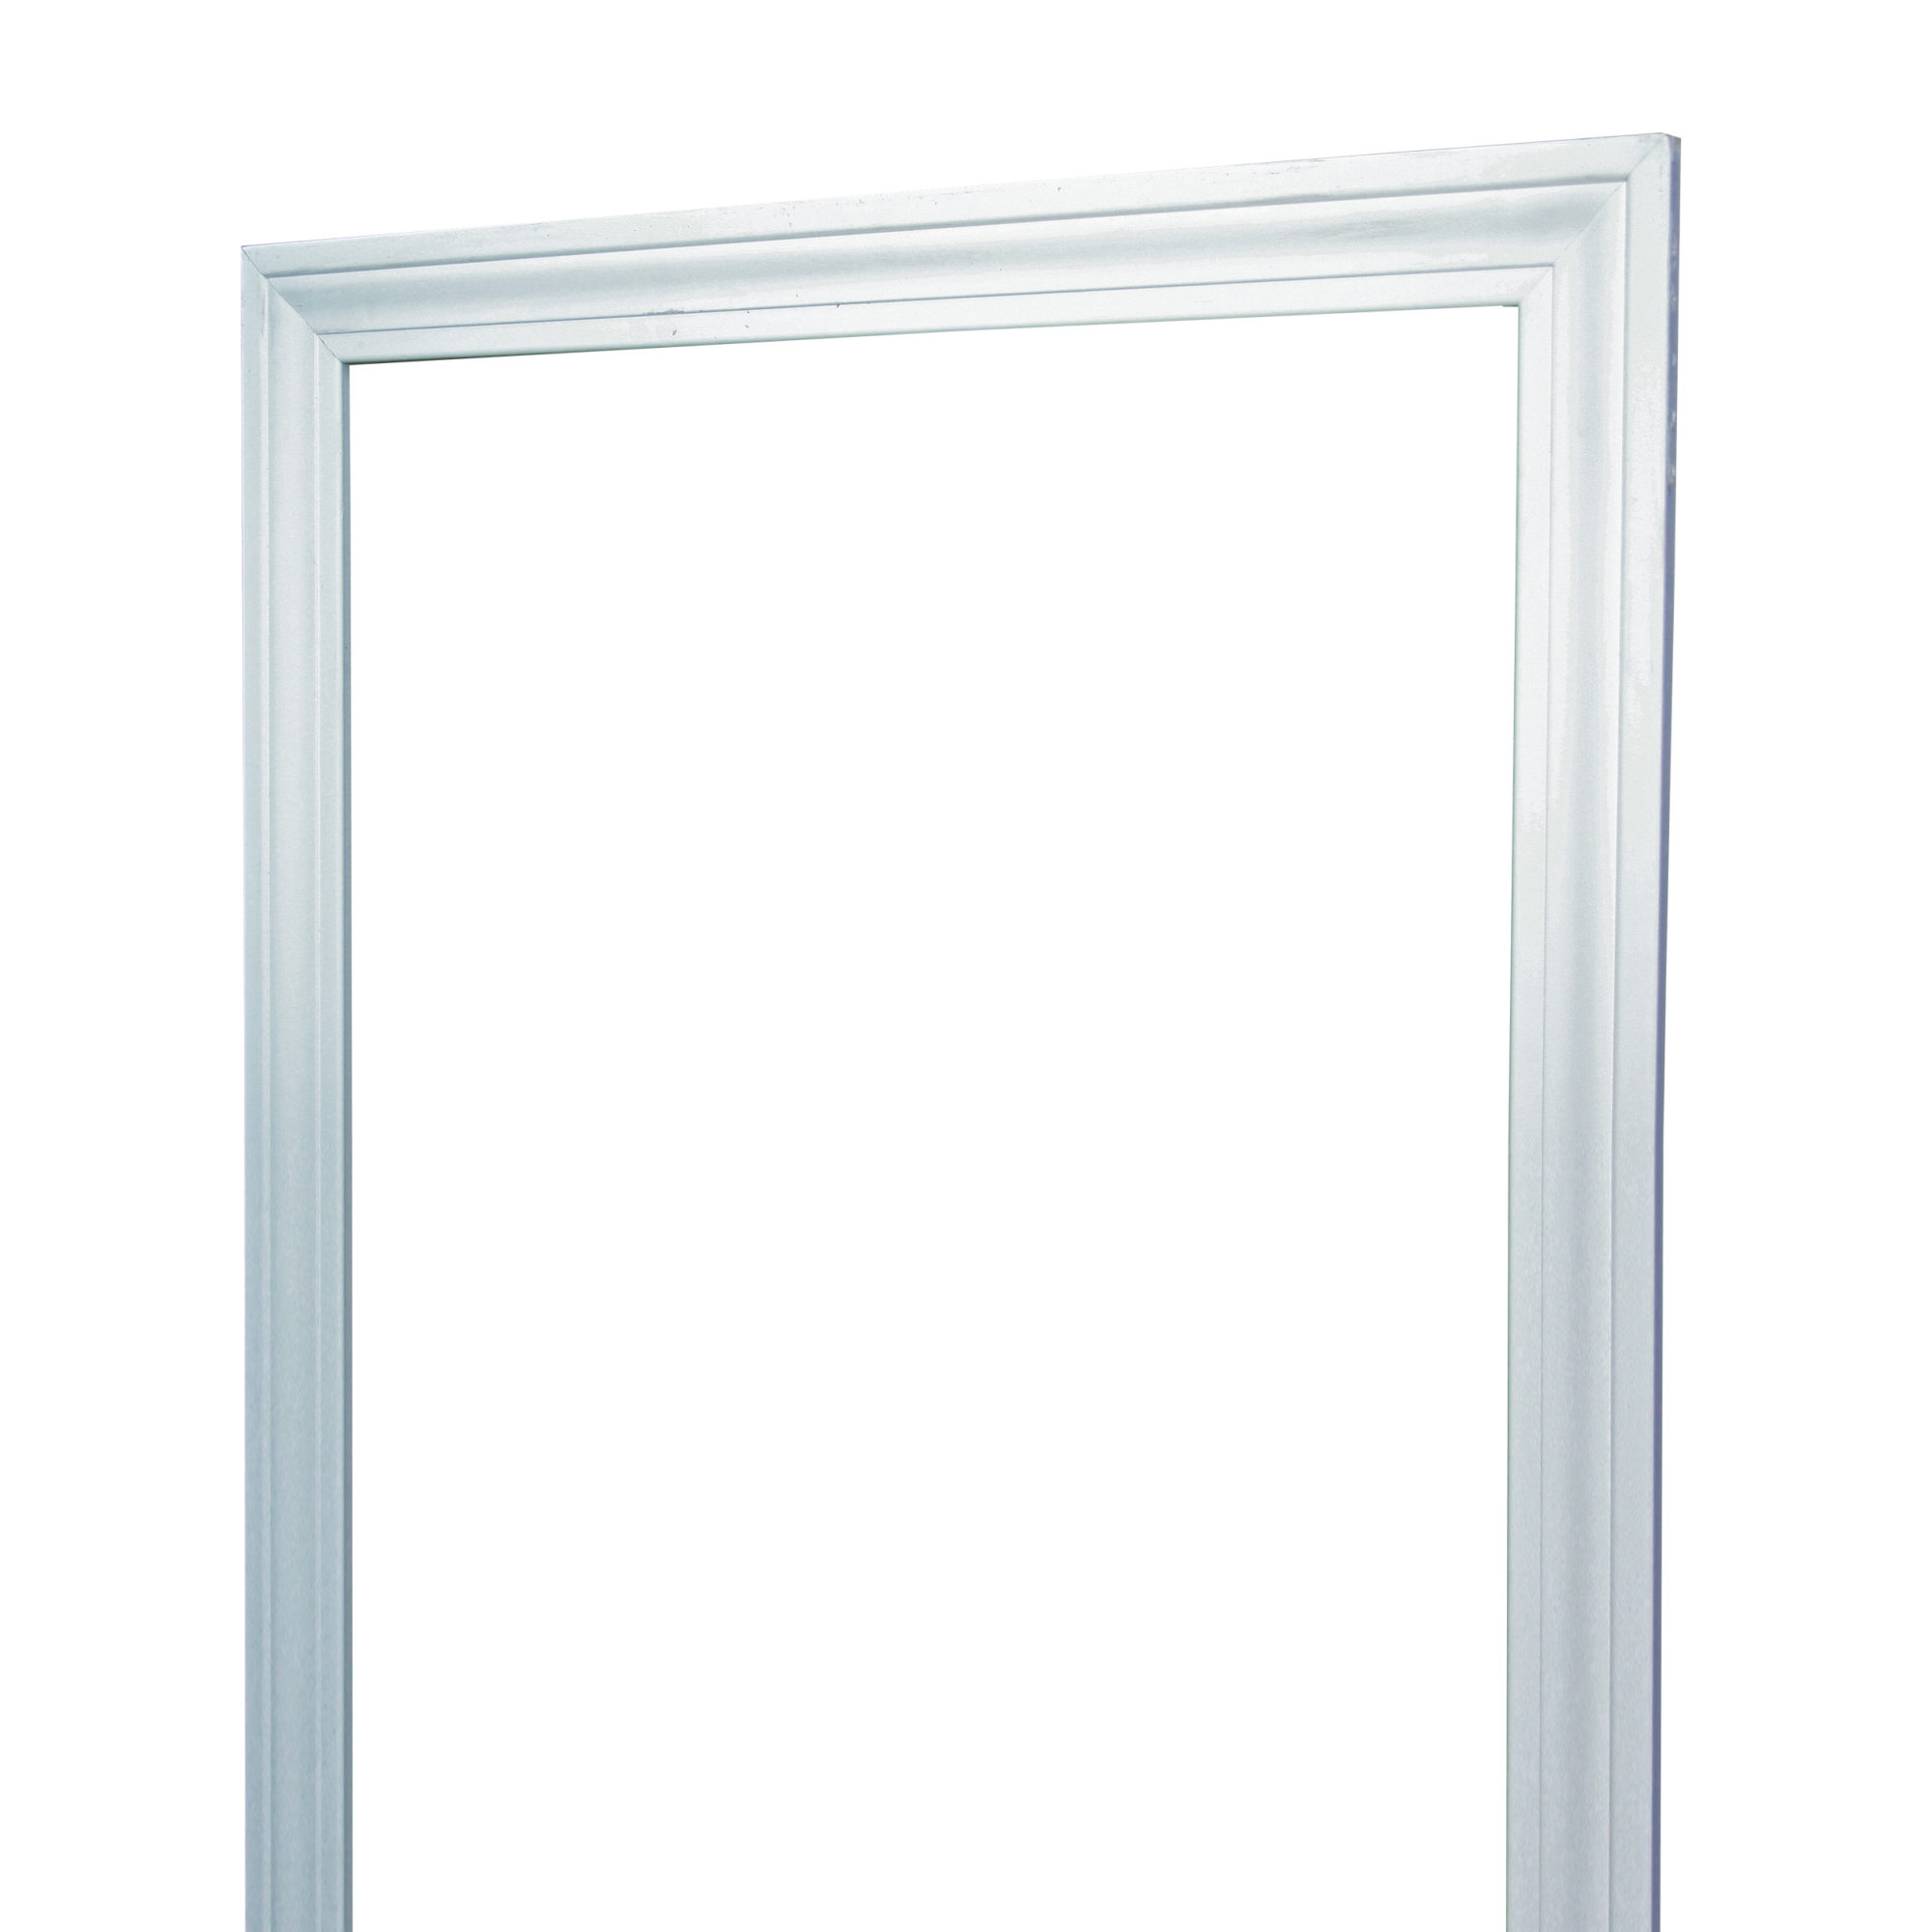 Msg Moulding 2-1/2″ Colonial 8710 Primed